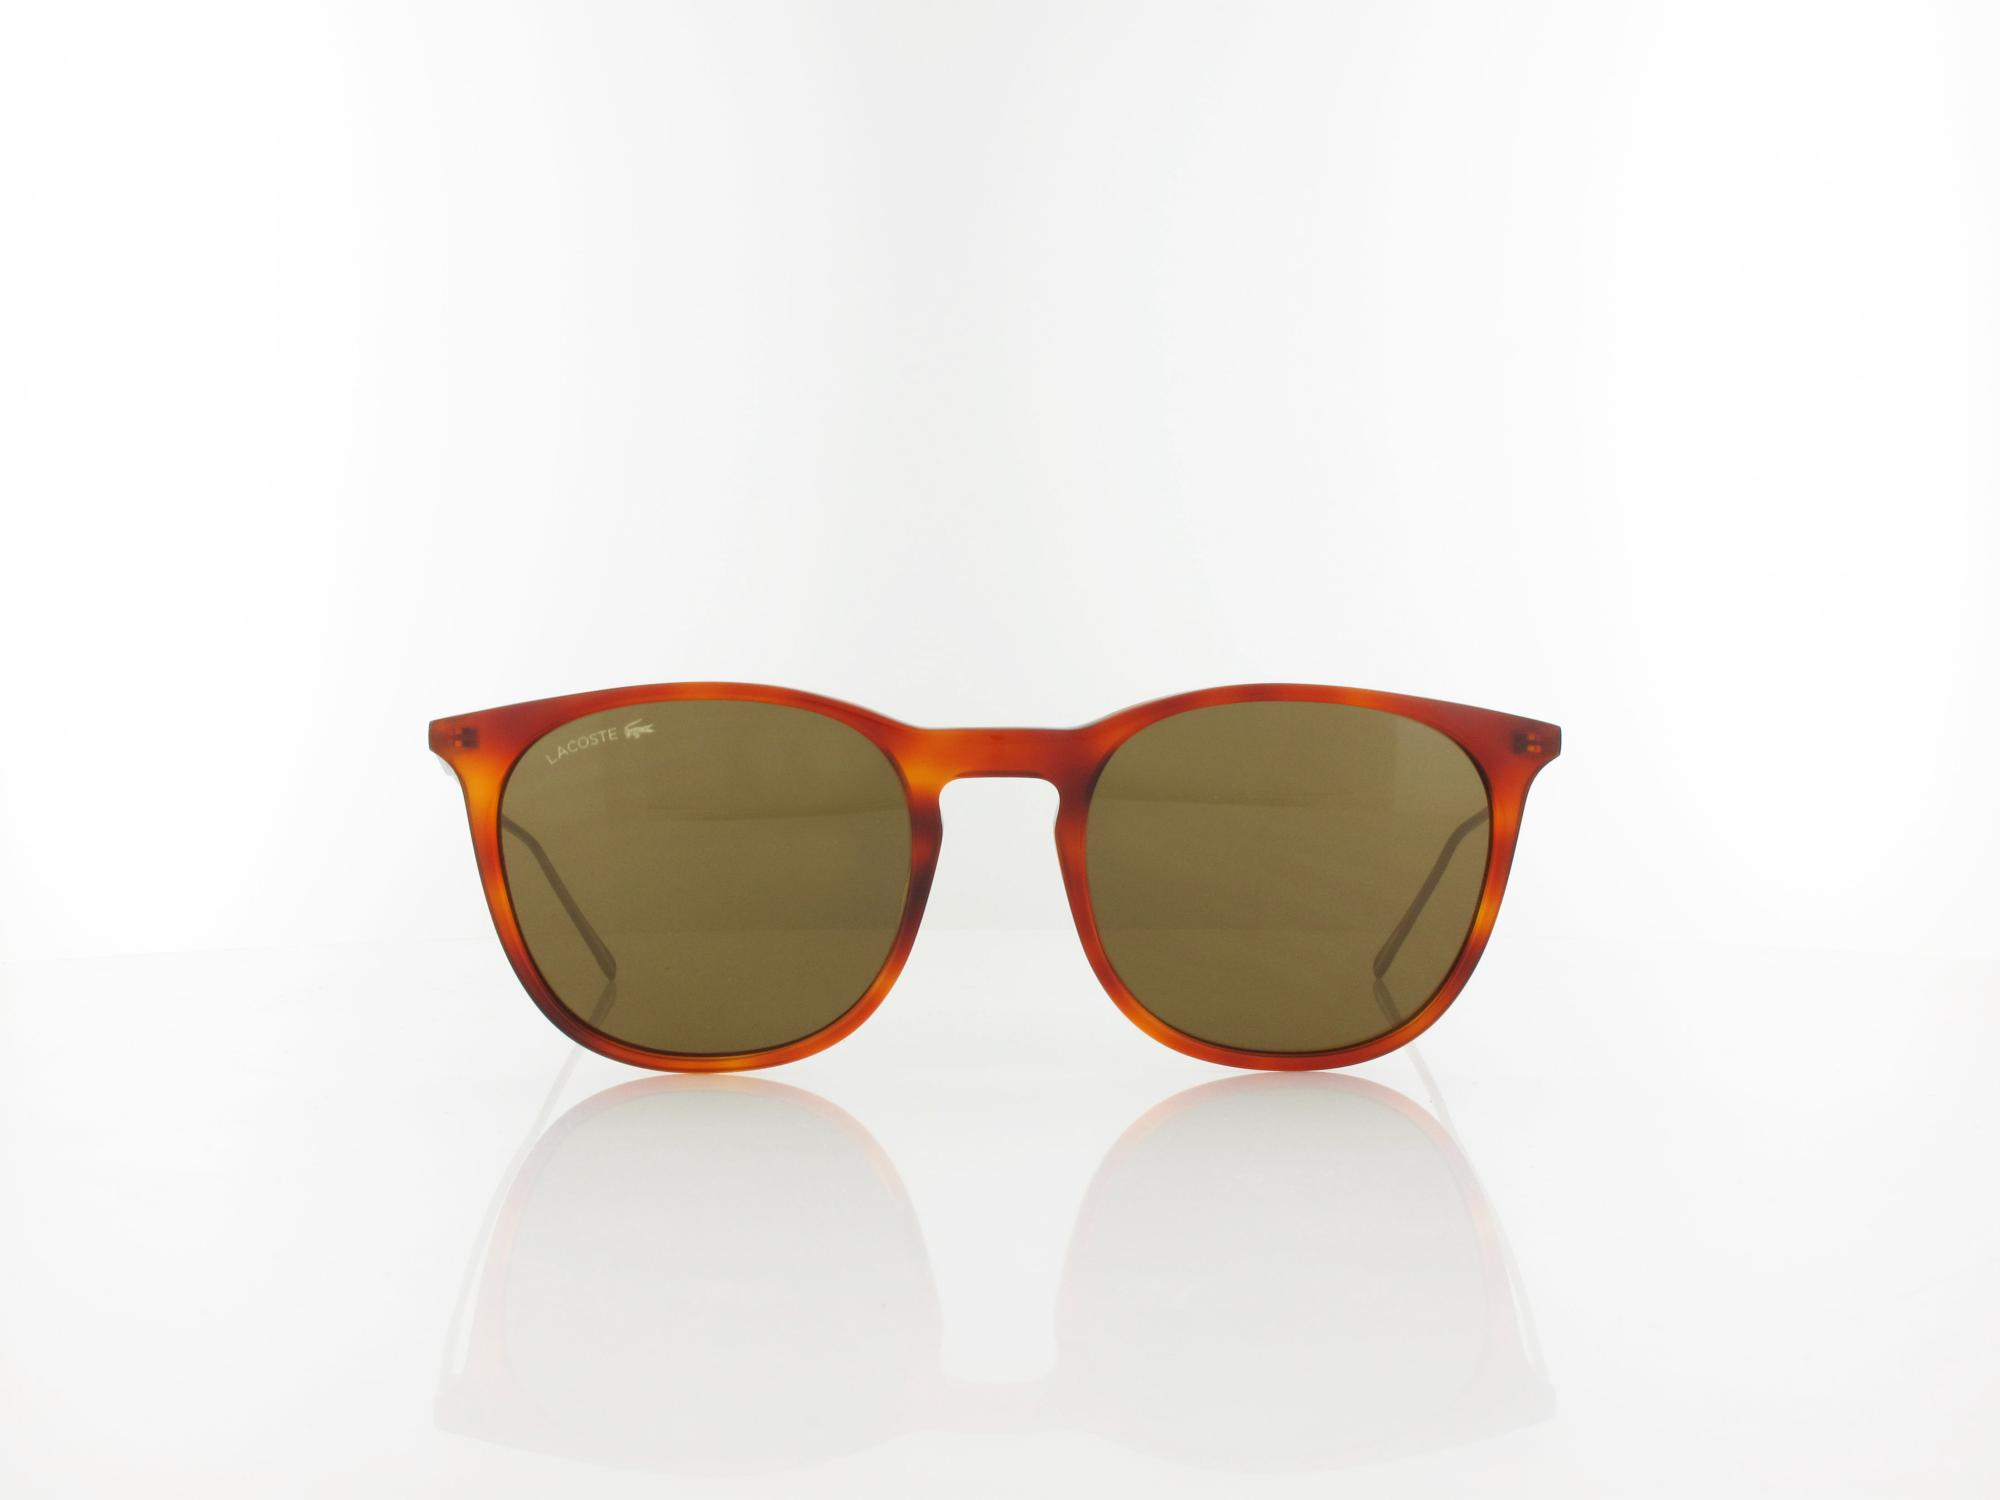 Lacoste | L879SPC 215 52 | light tortoise / brown